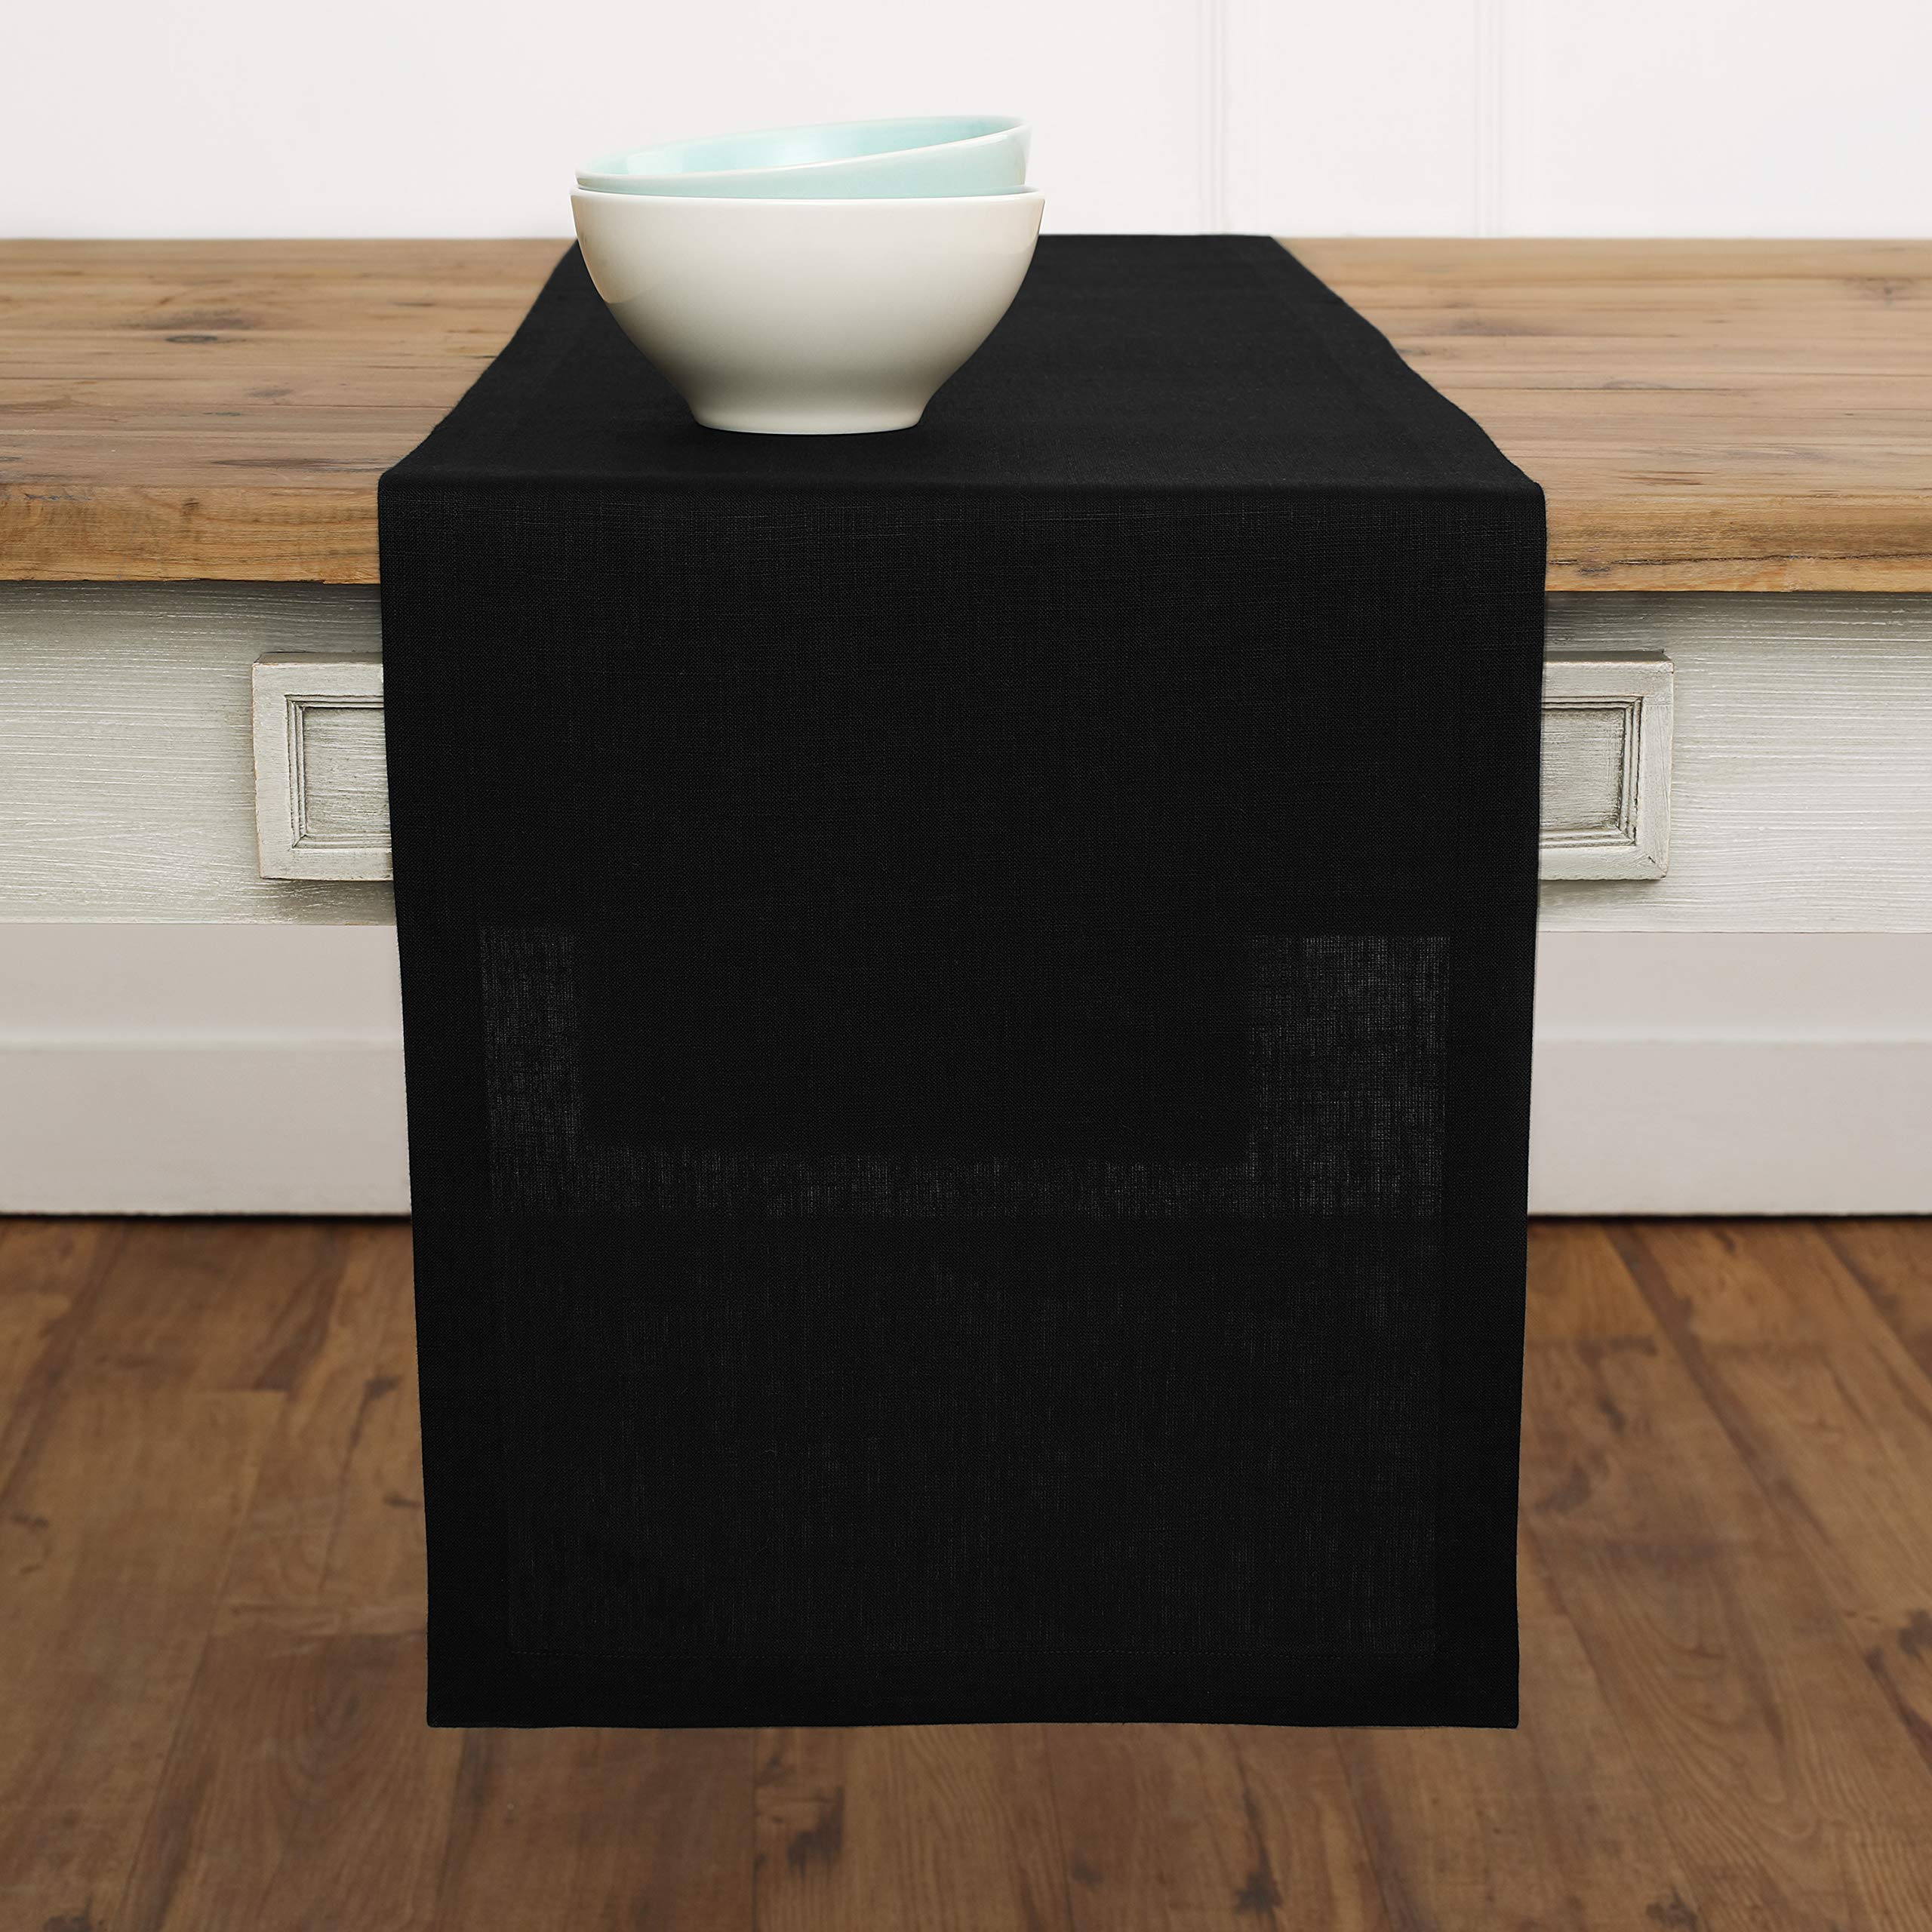 Solino Home Linen Table Runner - 14 x 72 Inch, Crafted from 100% Pure European Flax - Black, Athena